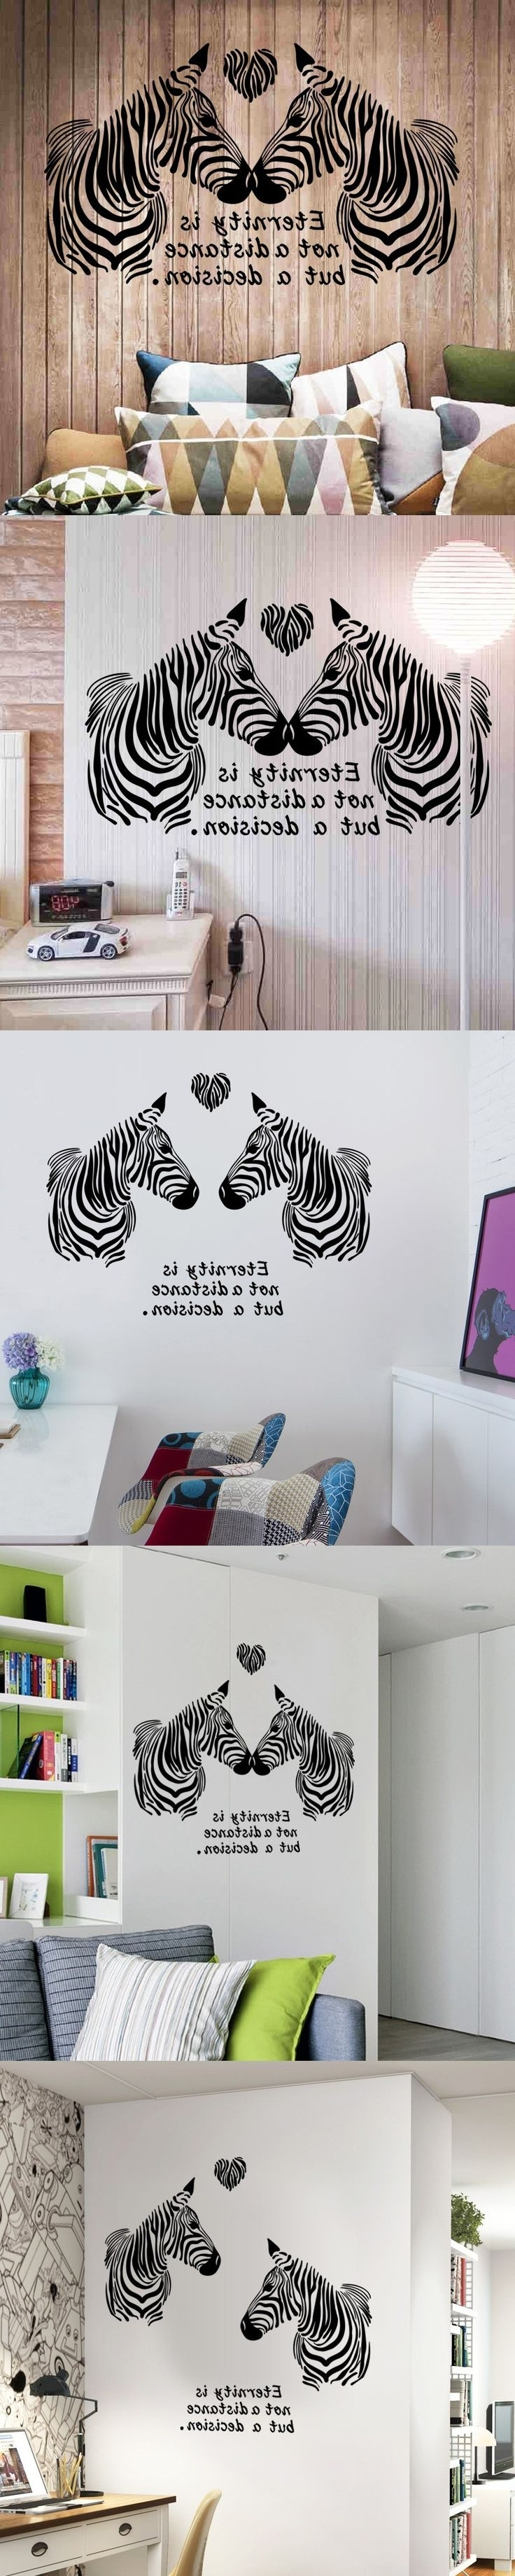 Zebra Art, Wall (View 15 of 15)